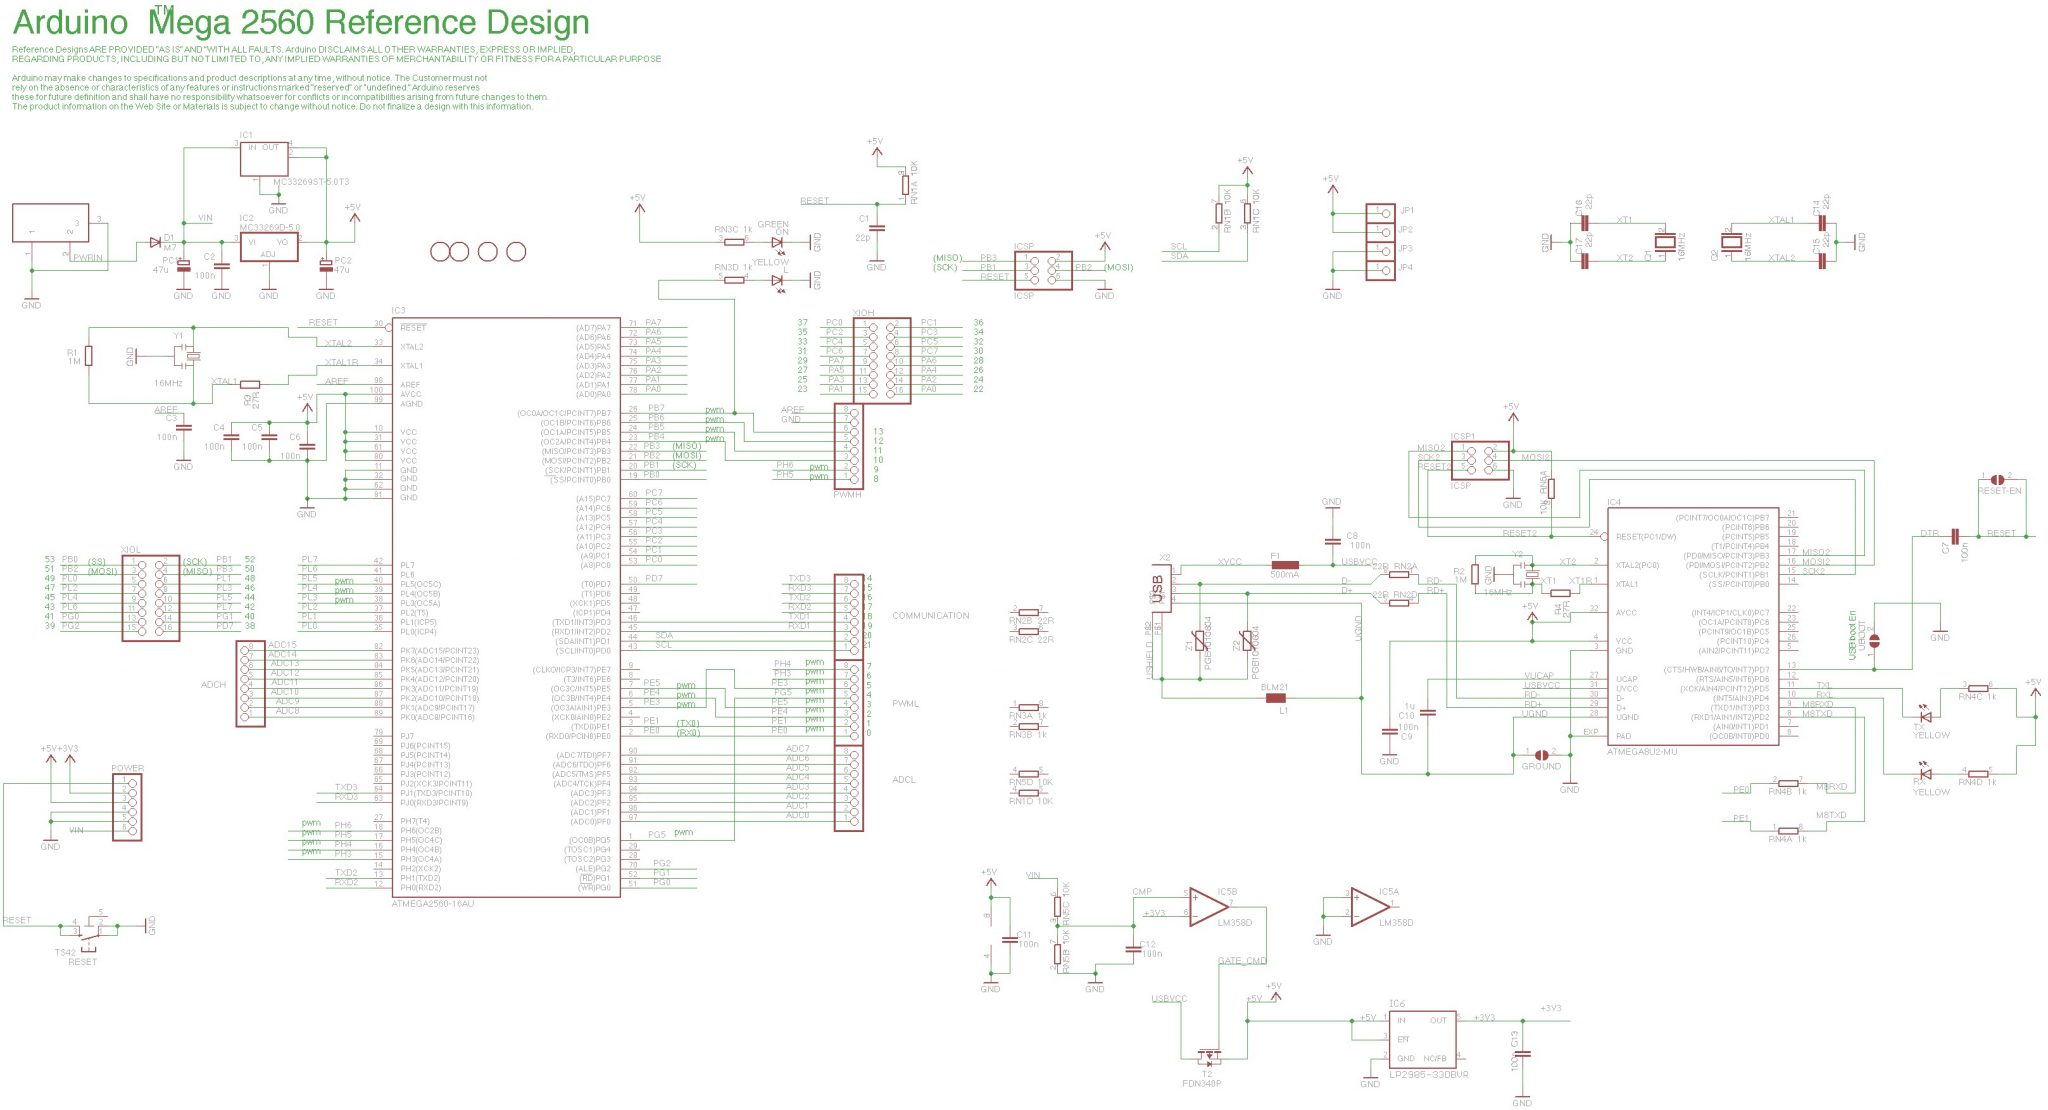 Schematic Circuit Diagram for Arduino Mega 2560 on ipad schematic, atmega328 schematic, apple schematic, wiring schematic, robot schematic, atmega32u4 schematic, audio schematic, servo schematic, iphone schematic, breadboard schematic, msp430 schematic, pcb schematic, wireless schematic, shields schematic,